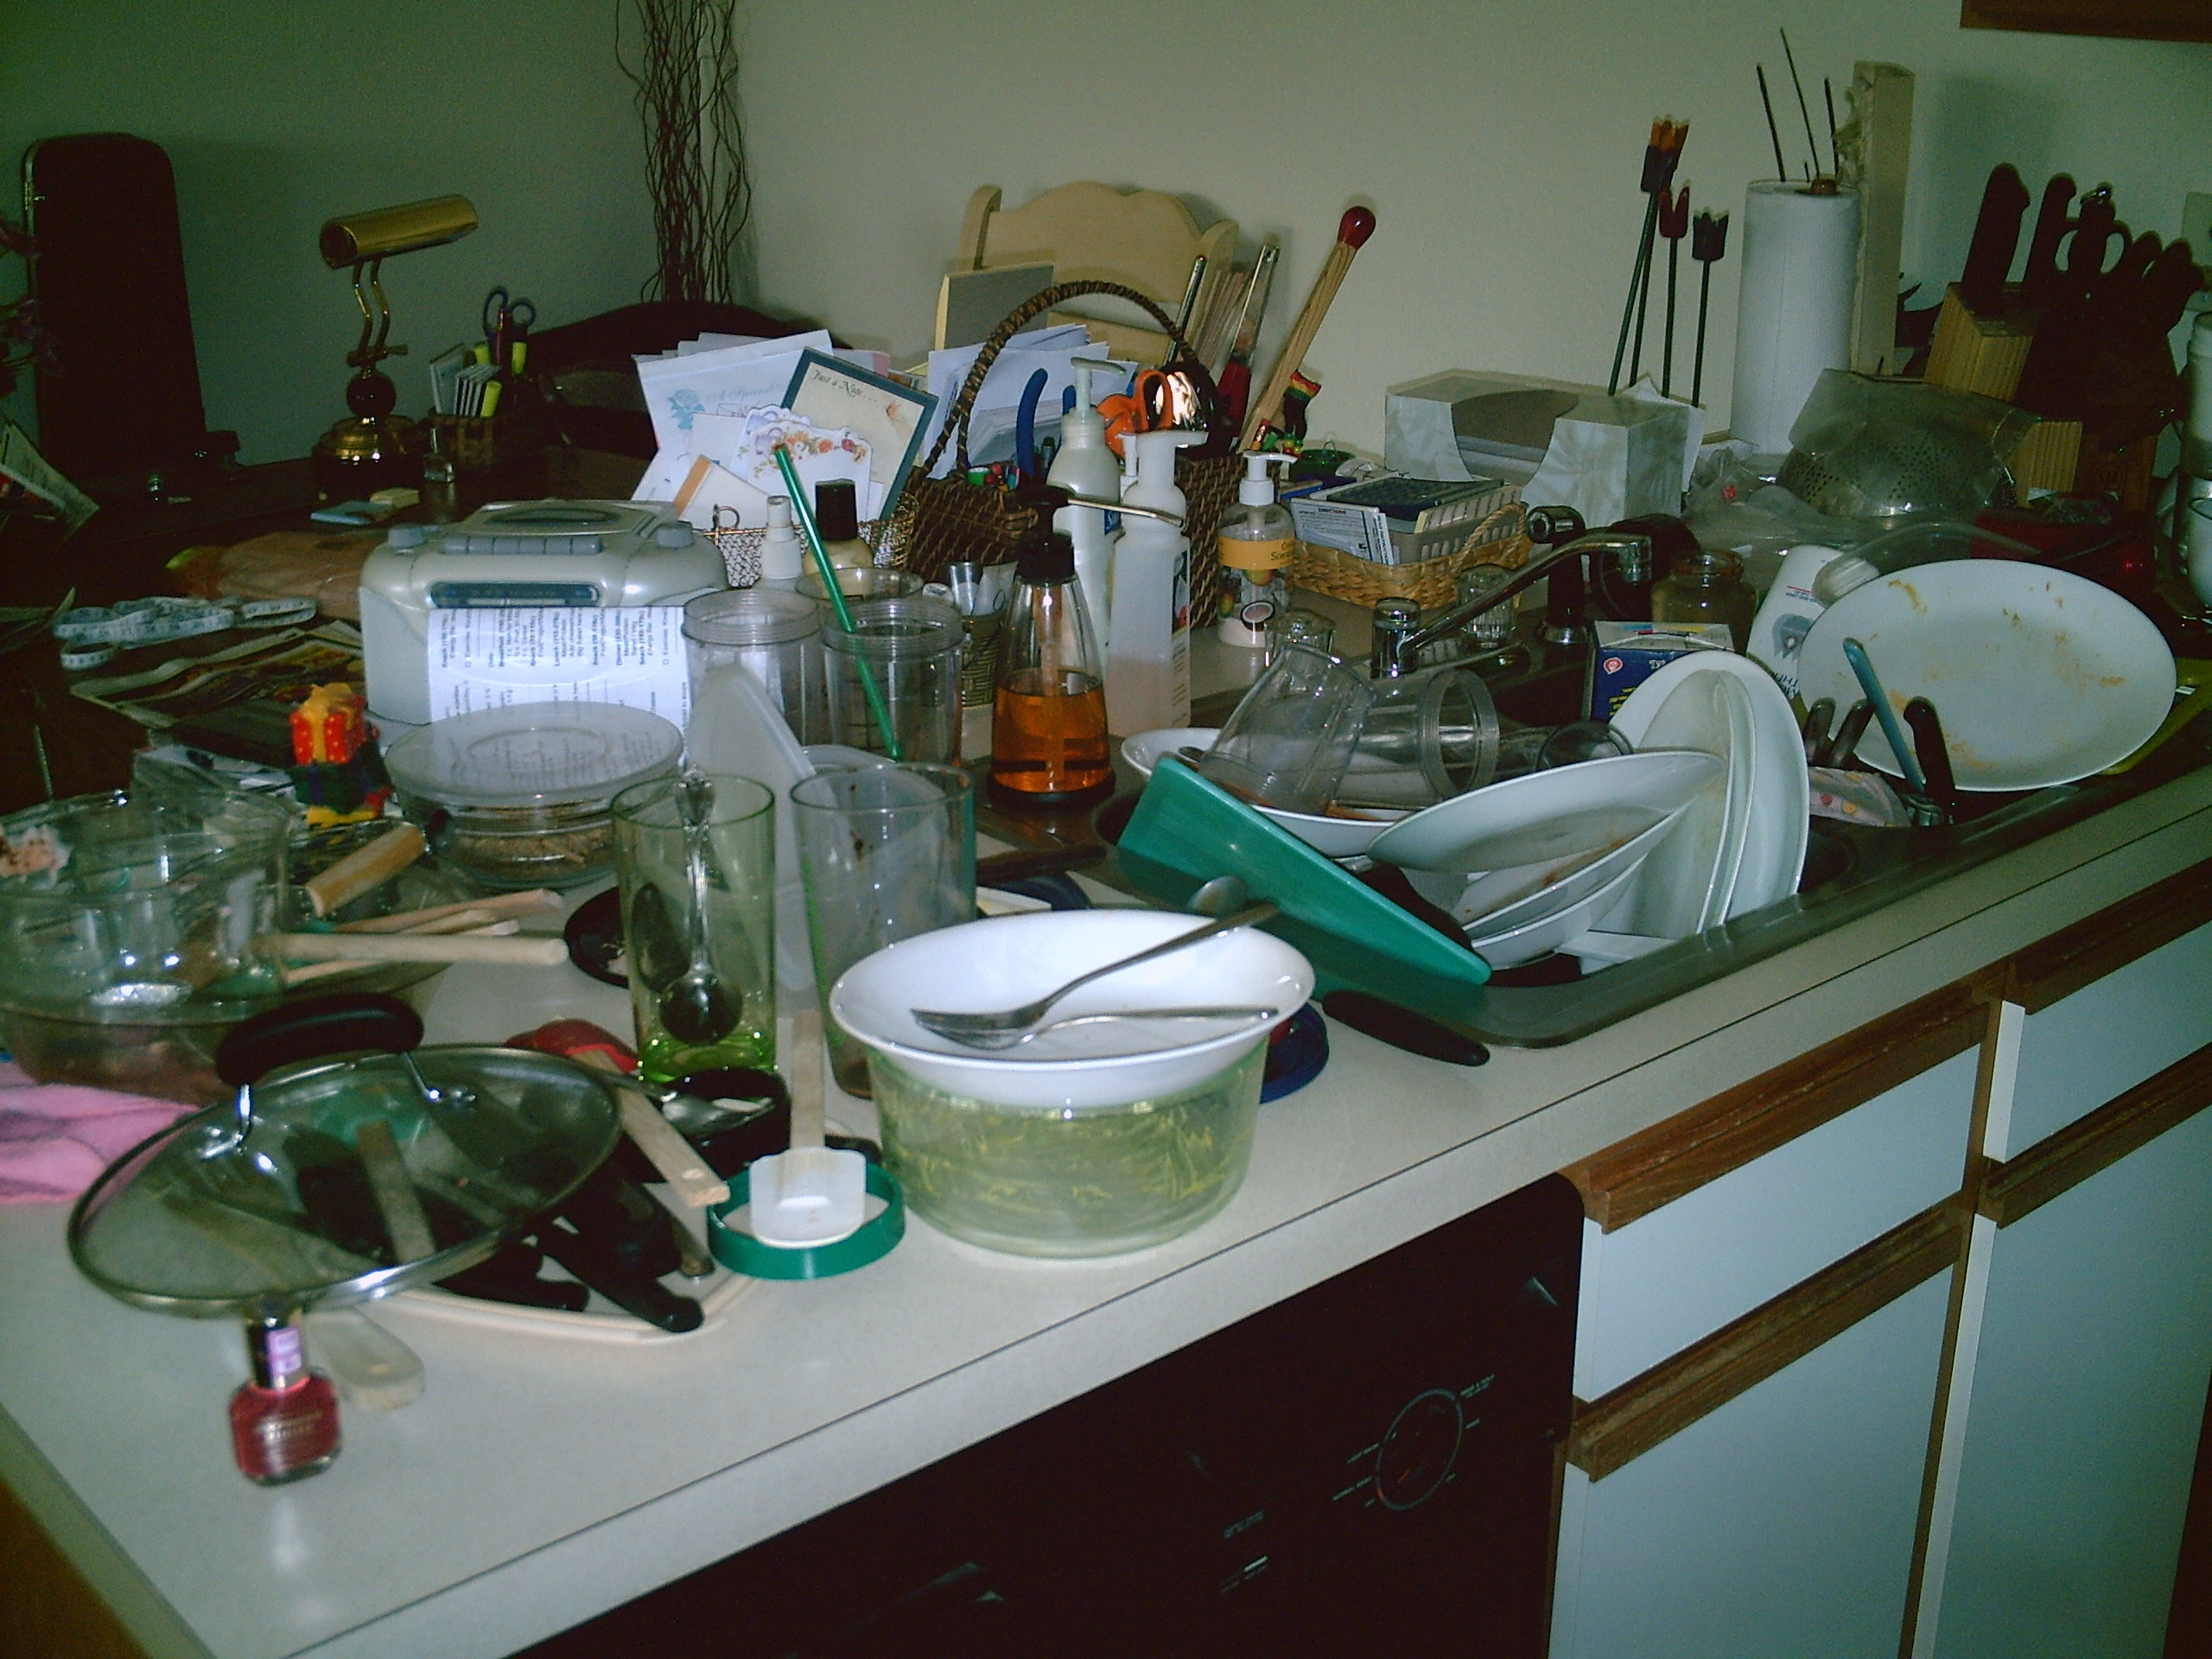 messy-dishes.JPG